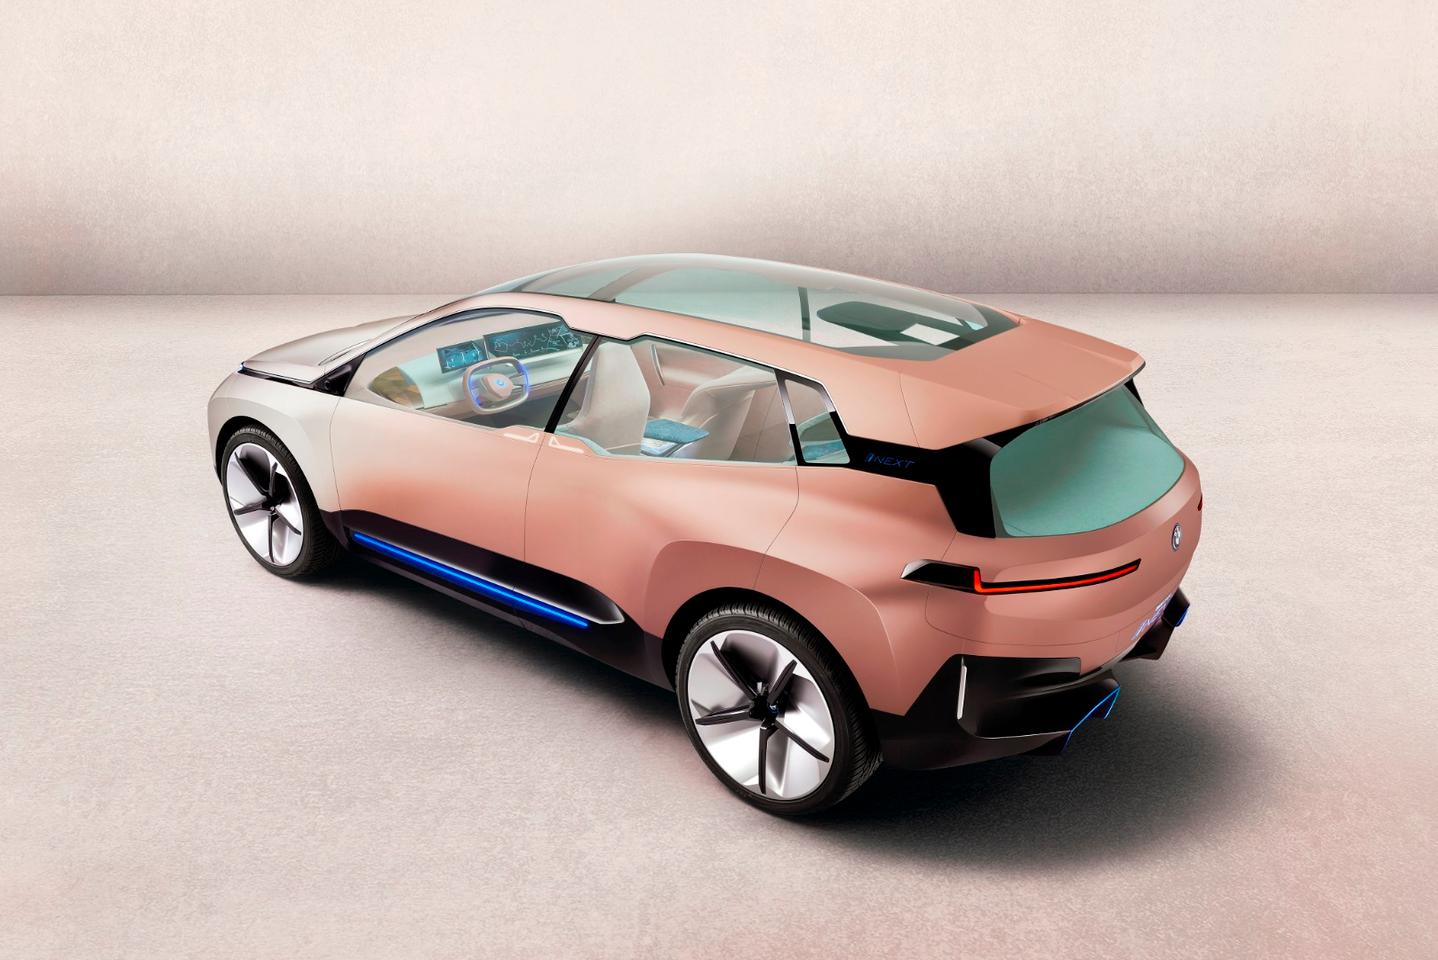 The BMWVision iNext carries a very i3 look to its design, and likely heralds the kind of futuristic aim the company will havegoing forward